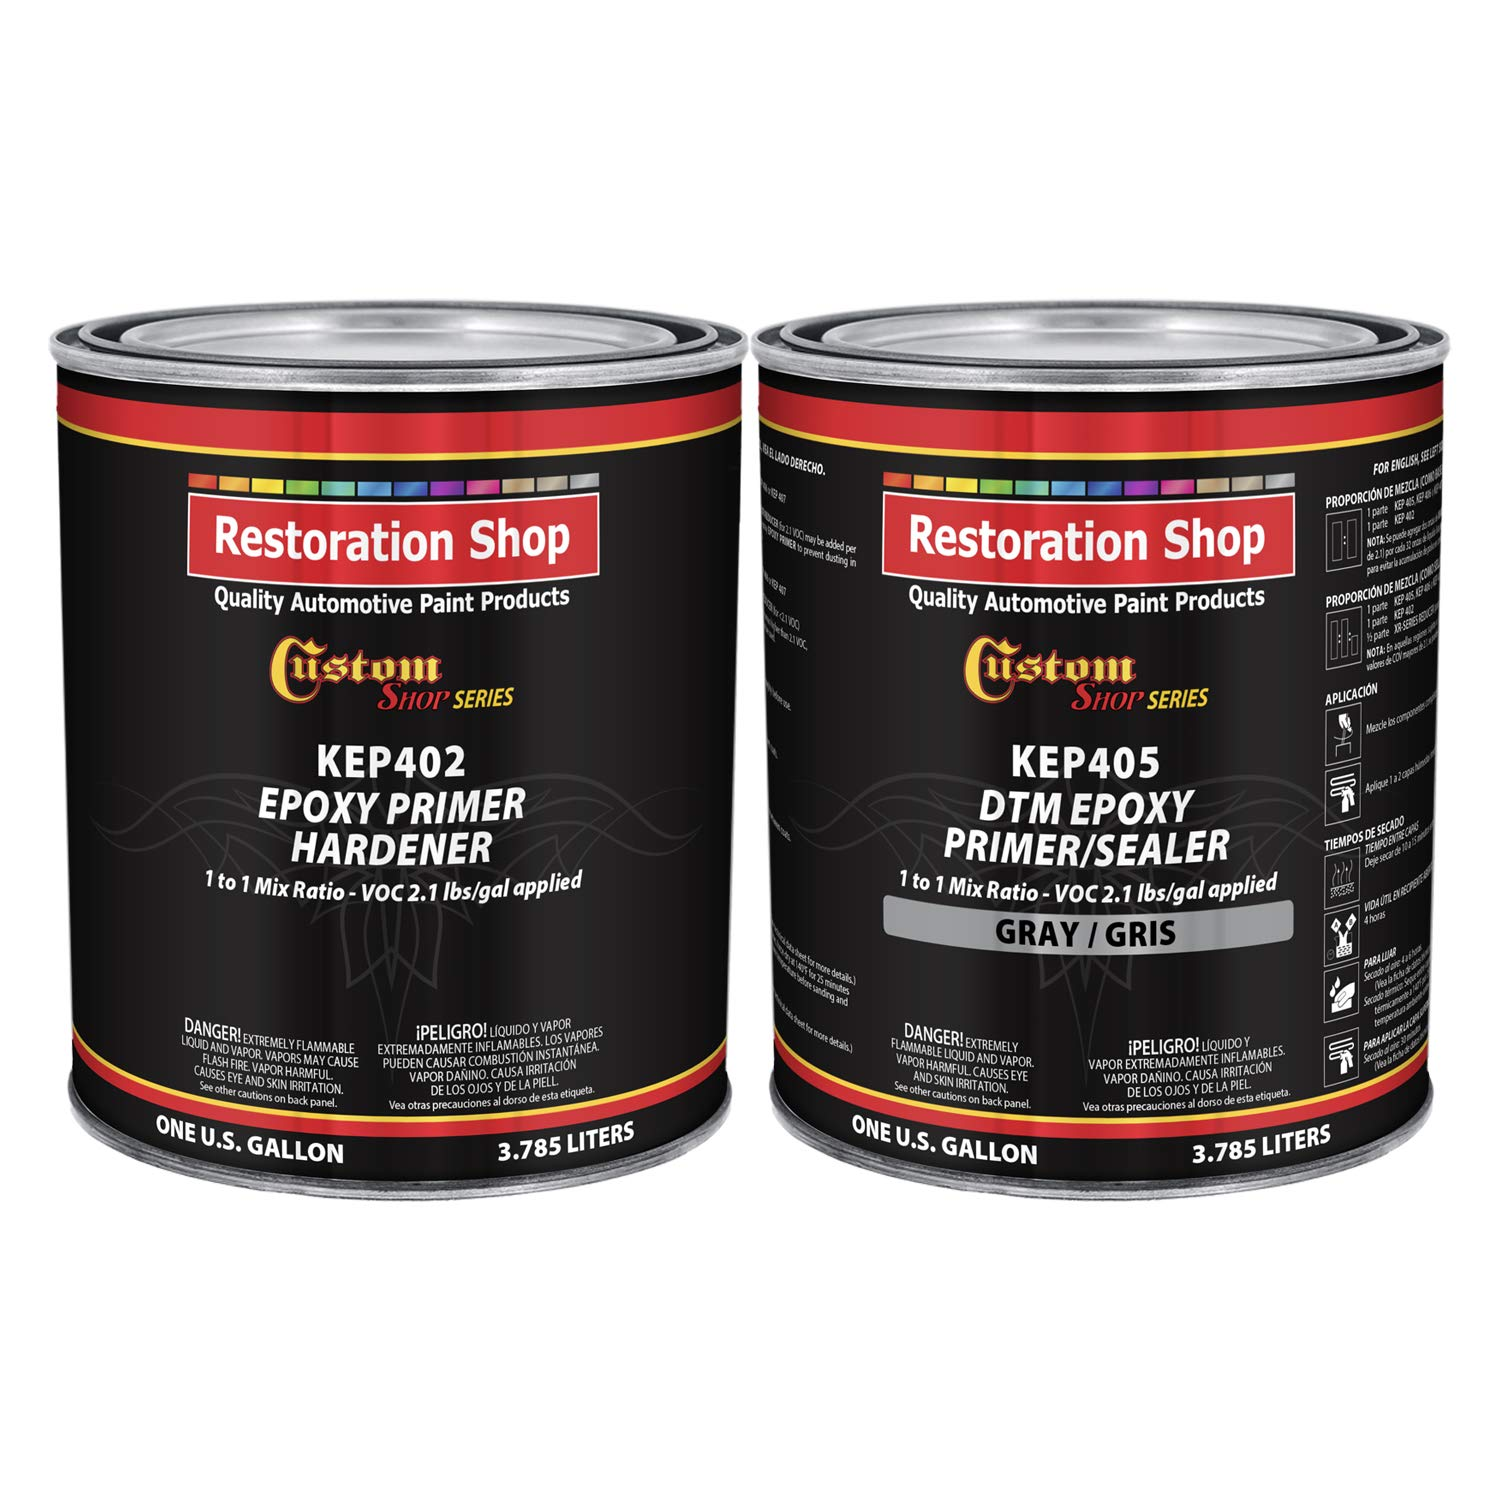 Custom Shop - Gray Epoxy Primer/Sealer 2.1 VOC (2-Gallon Kit) Anti-Corrosive DTM High-Performance Primer for Automotive and Industrial use Kit = 1 Gal. Epoxy Primer +1 Gal. Epoxy Hardener (1-1 Mix) by Custom Shop